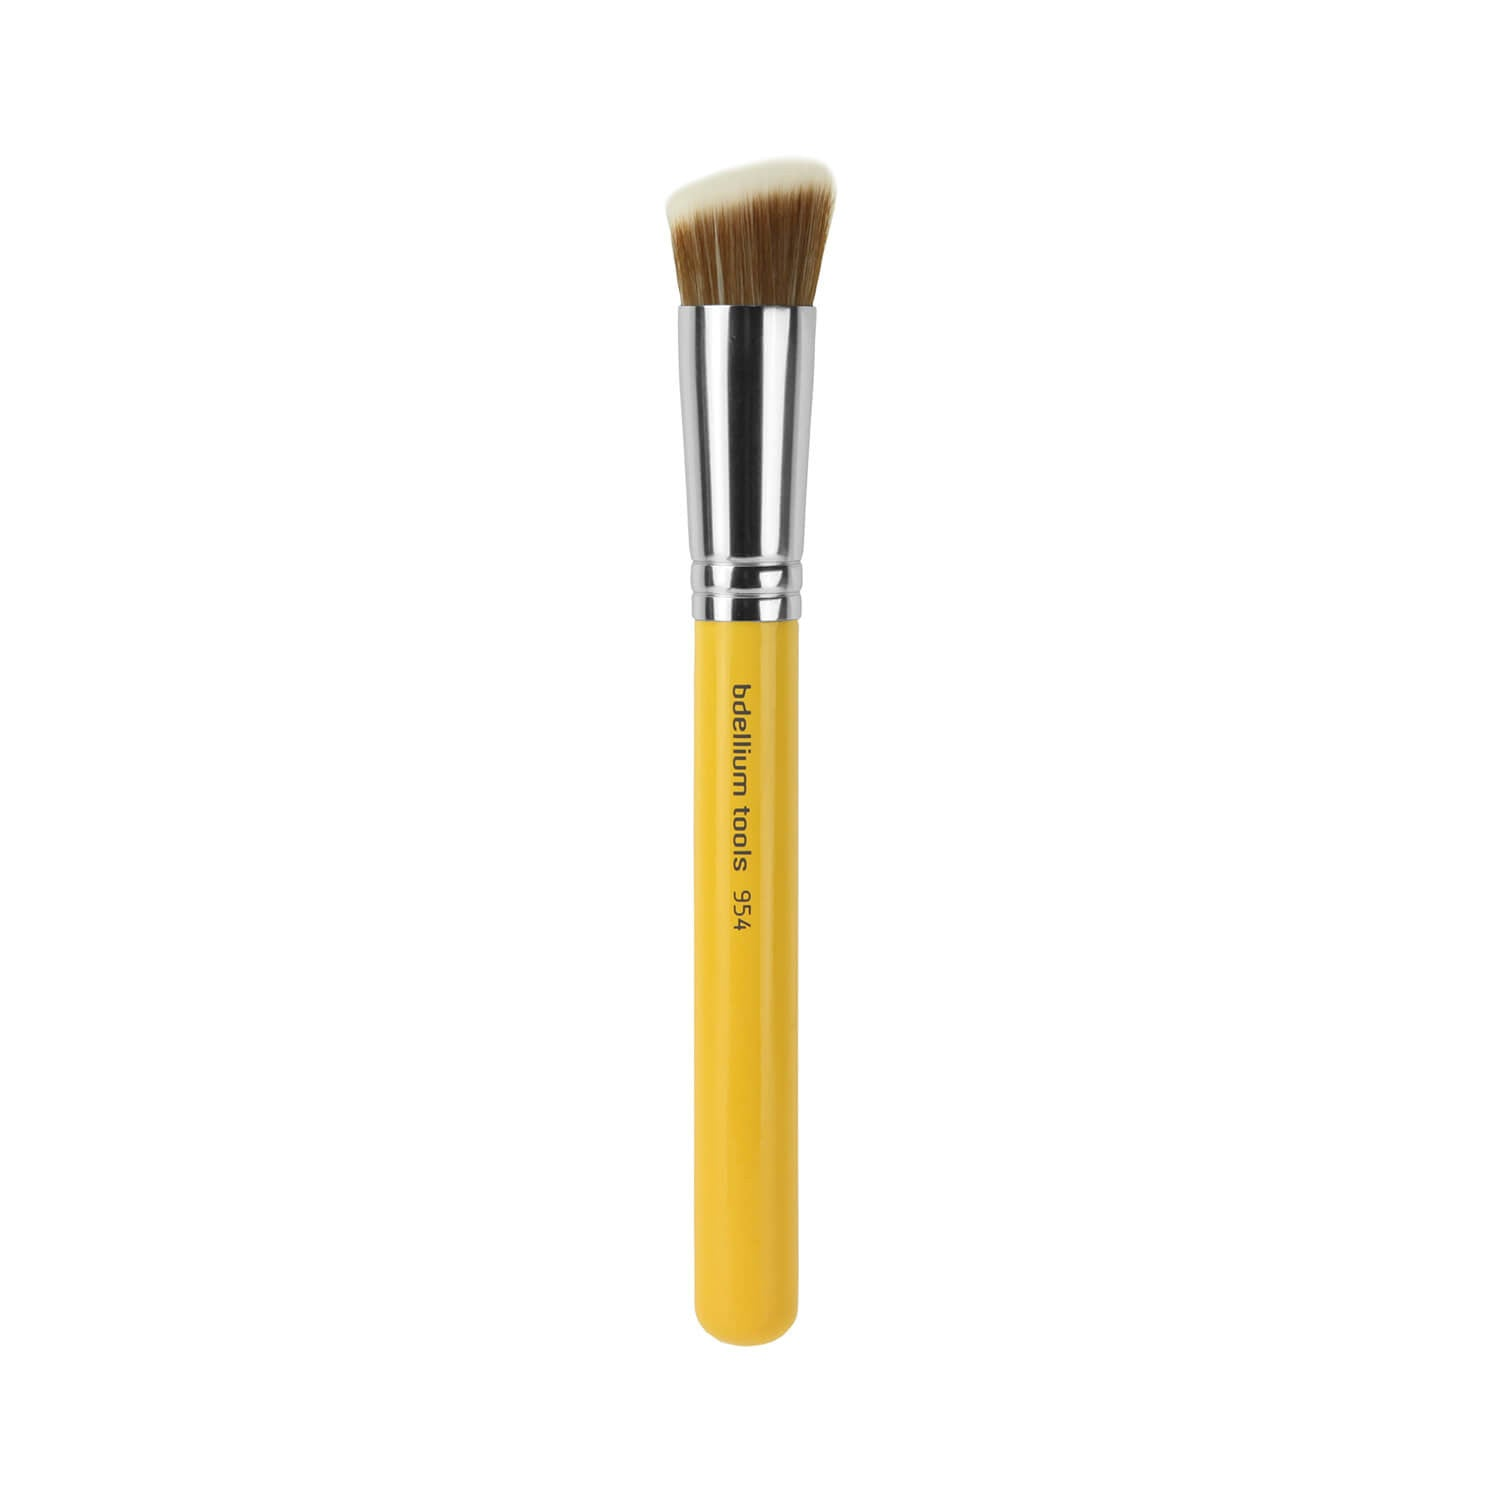 BDellium Tools Studio Line 954 Duet Fiber Slanted Kabuki Brush Yellow